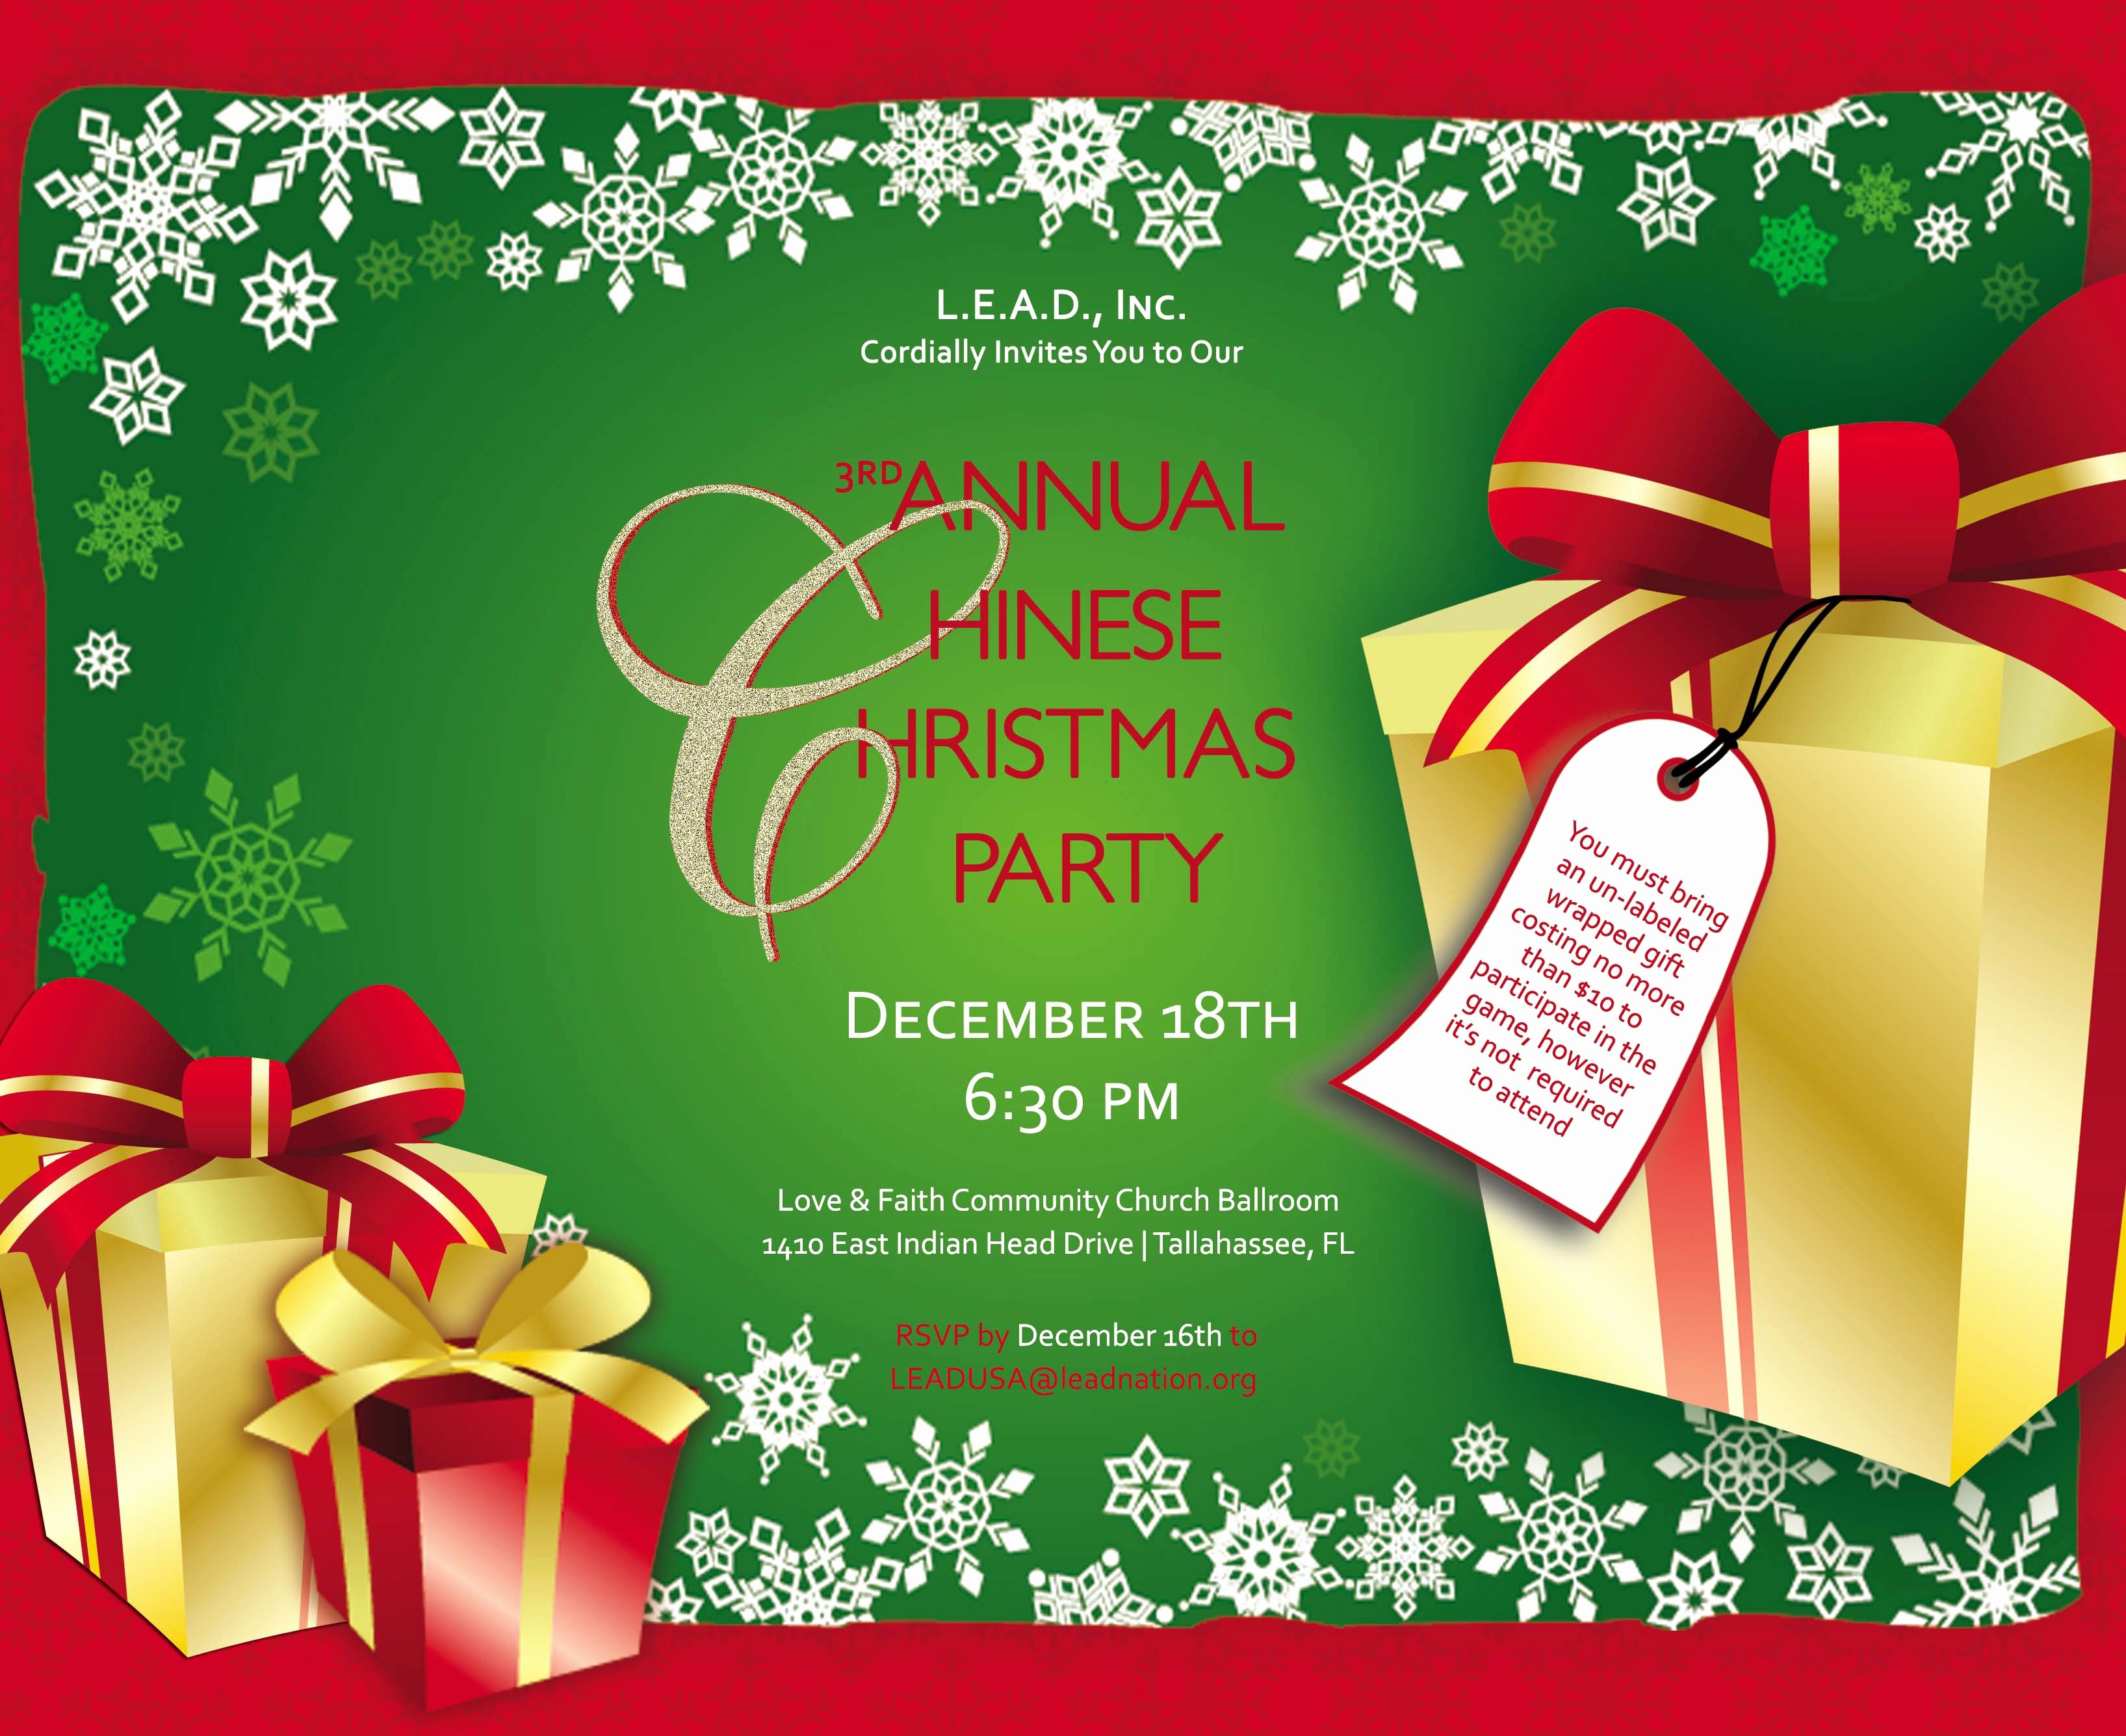 Christmas Invitations Templates Free Microsoft Elegant Free Holiday Flyer Templates Word Portablegasgrillweber